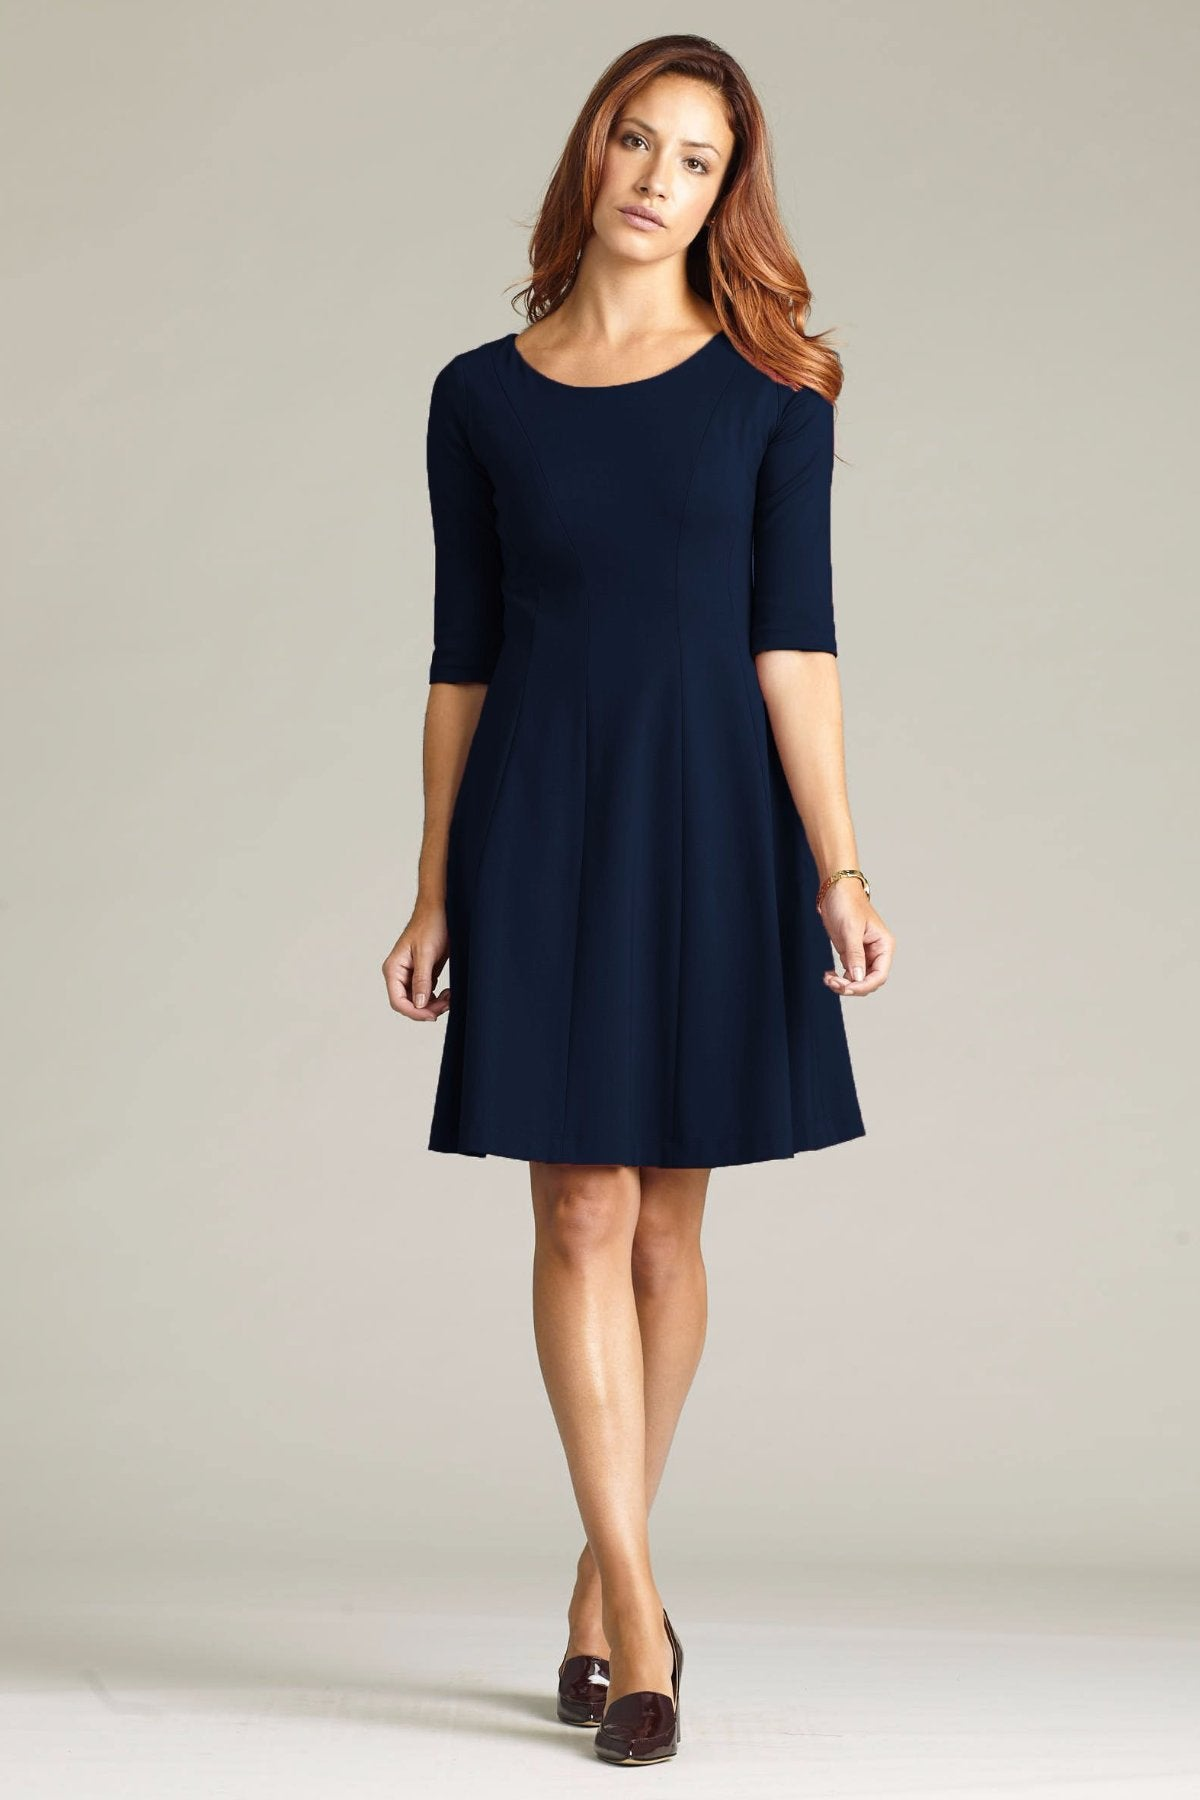 Lizette Dress 2.0 - Navy